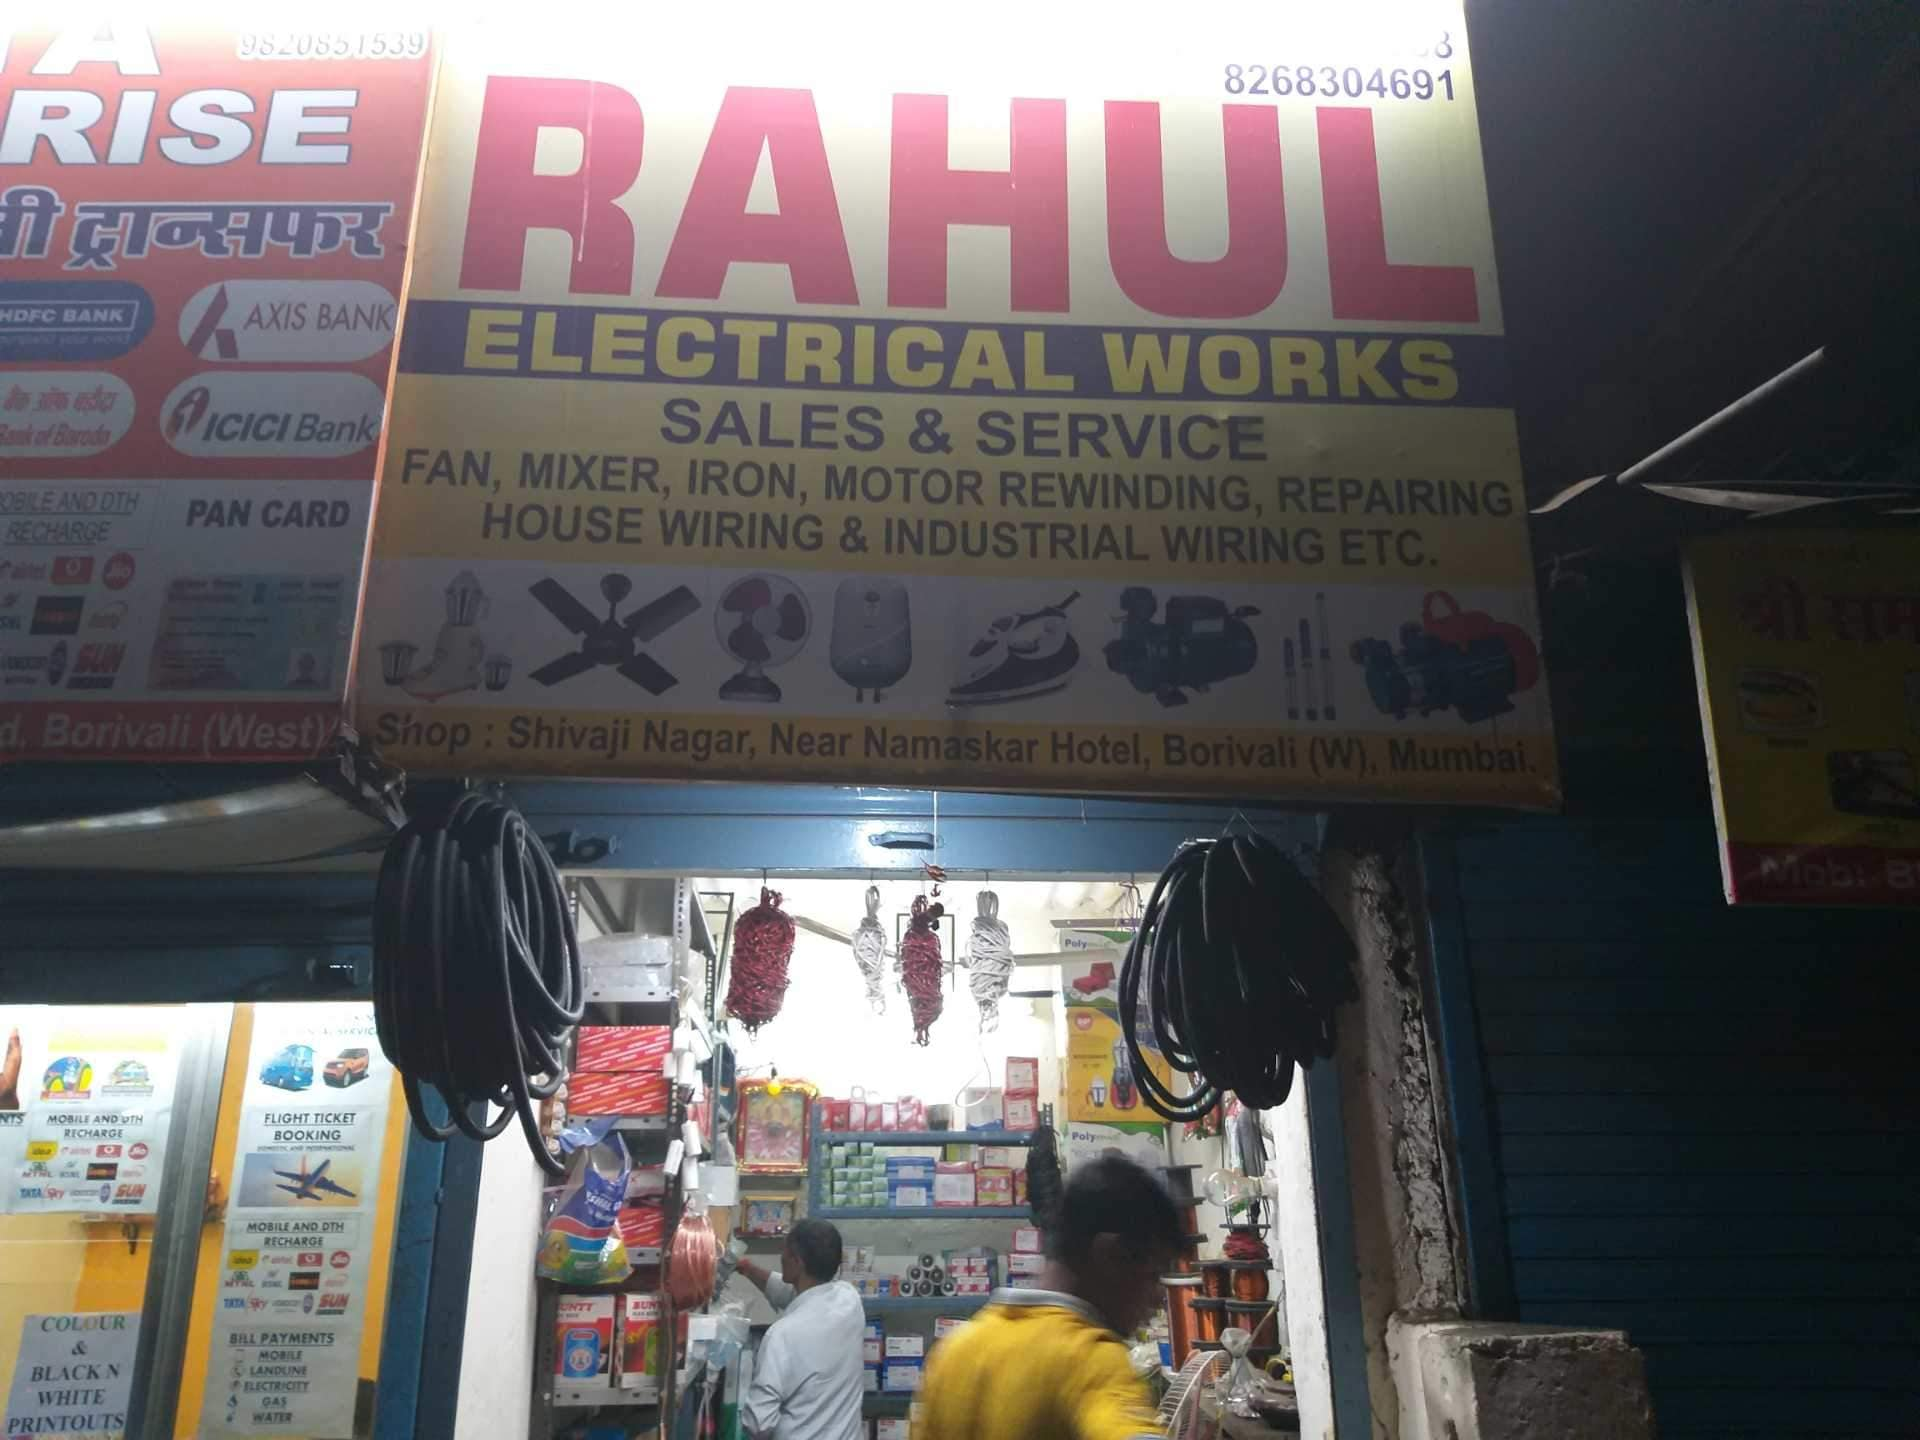 hight resolution of tower fan repair services borivali west mumbai